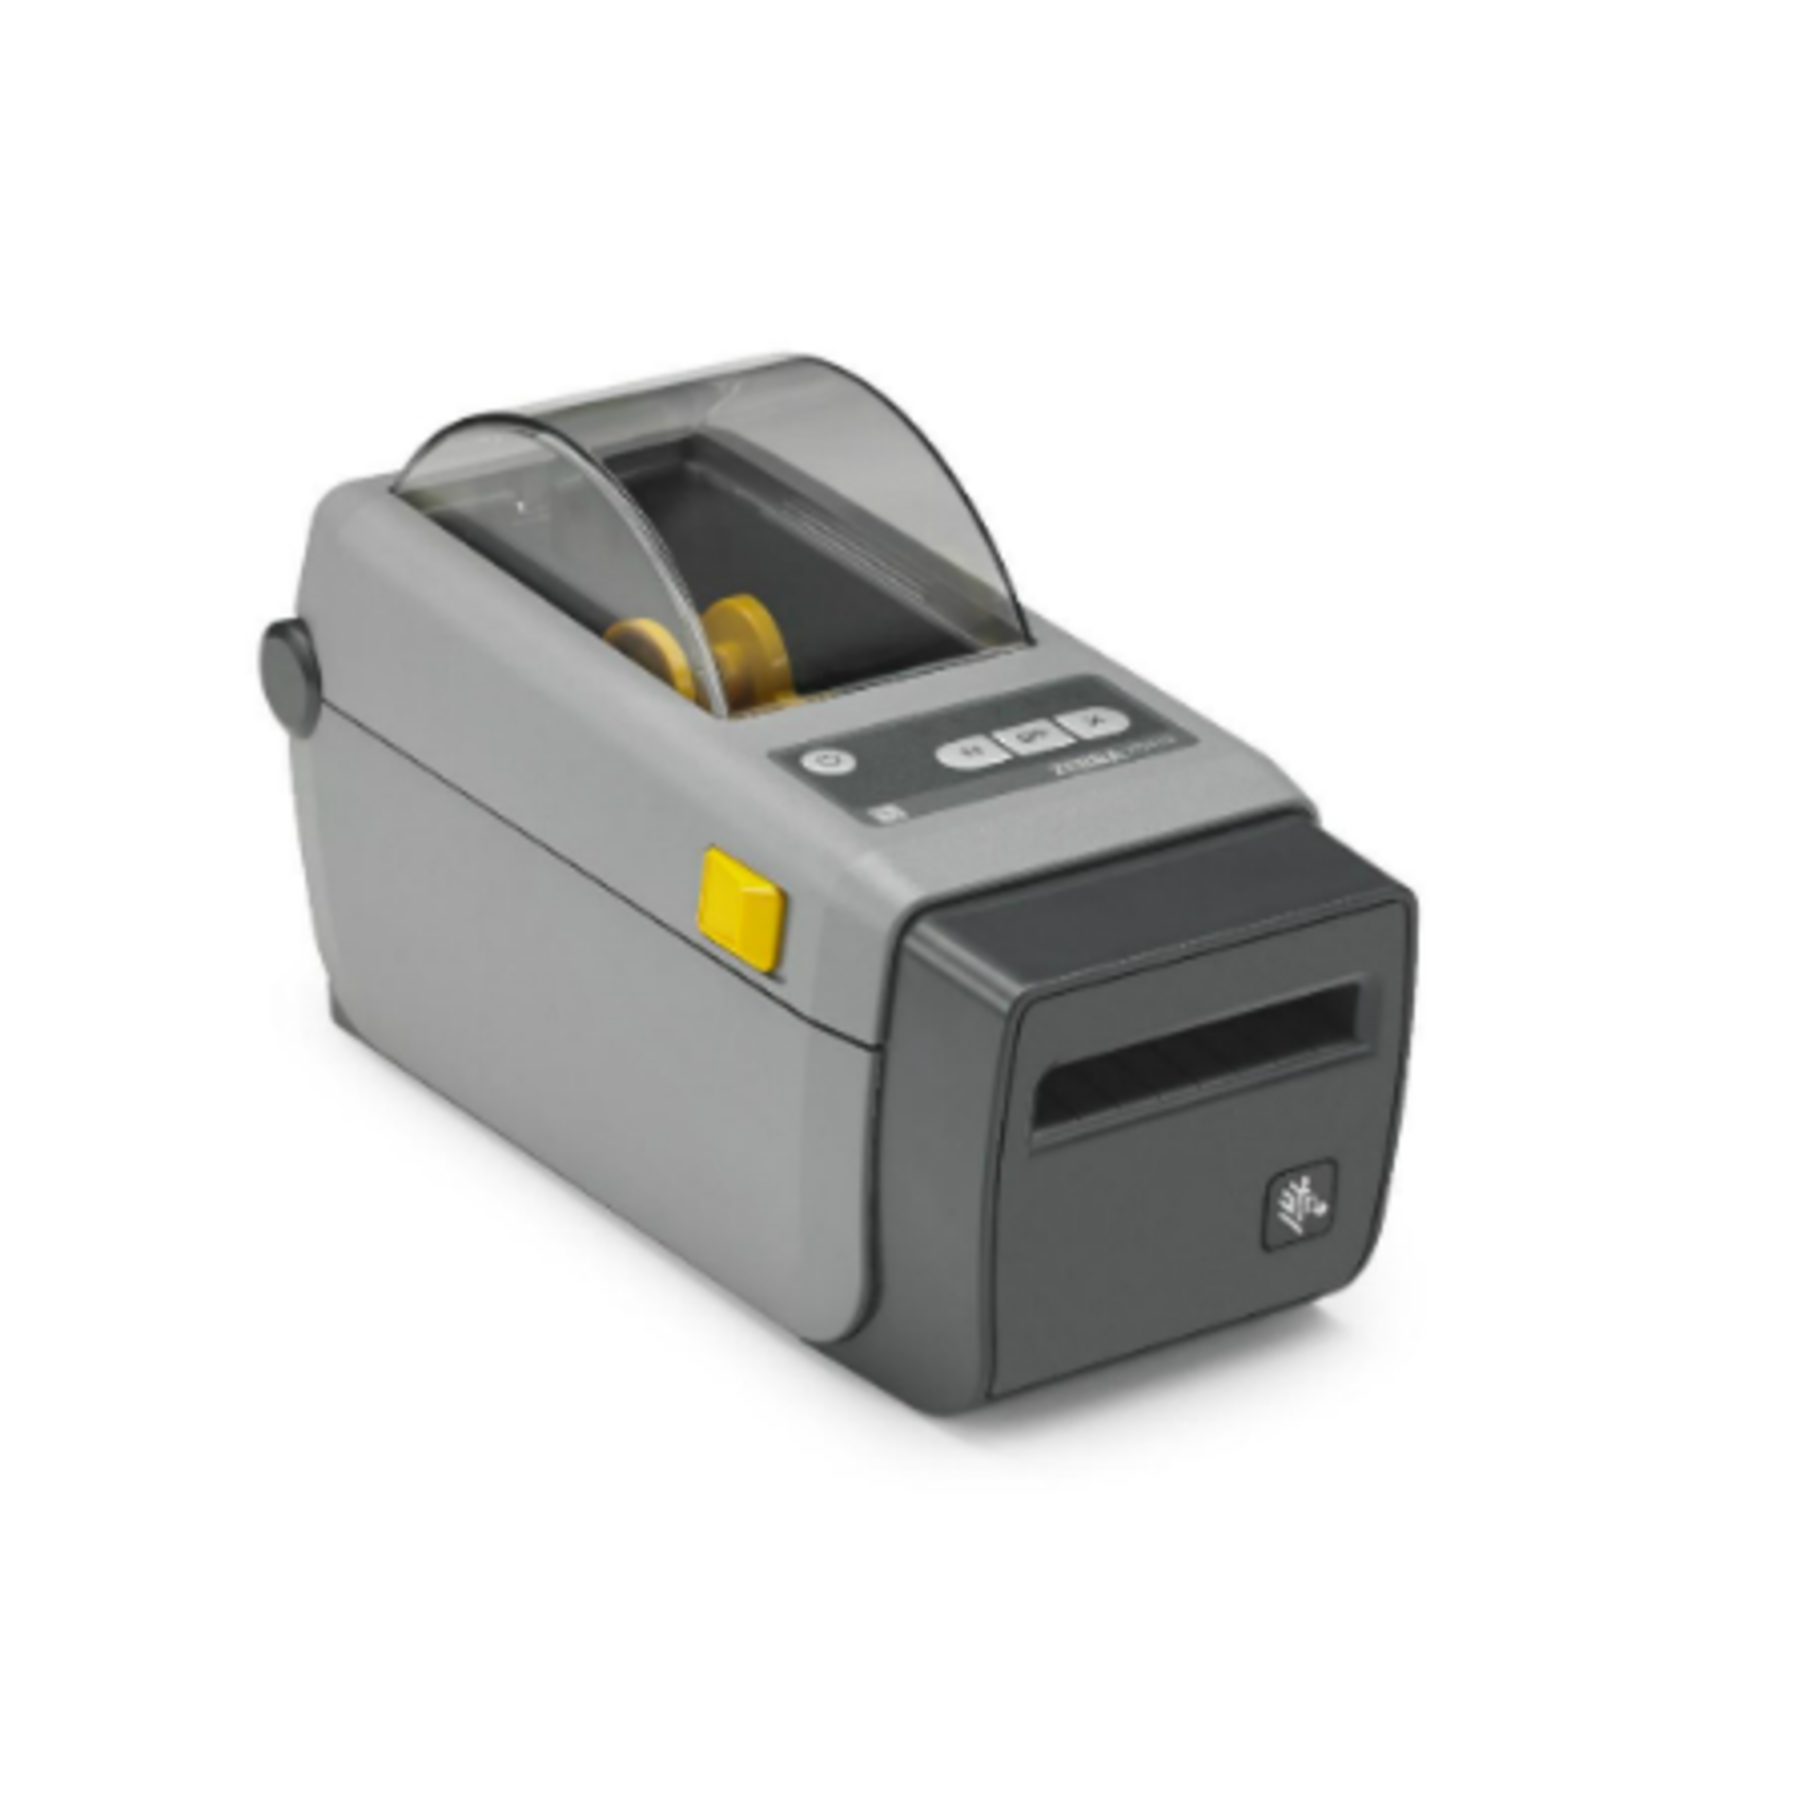 Zebra Zd410 Compact Label Printer Cash Drawers Ireland